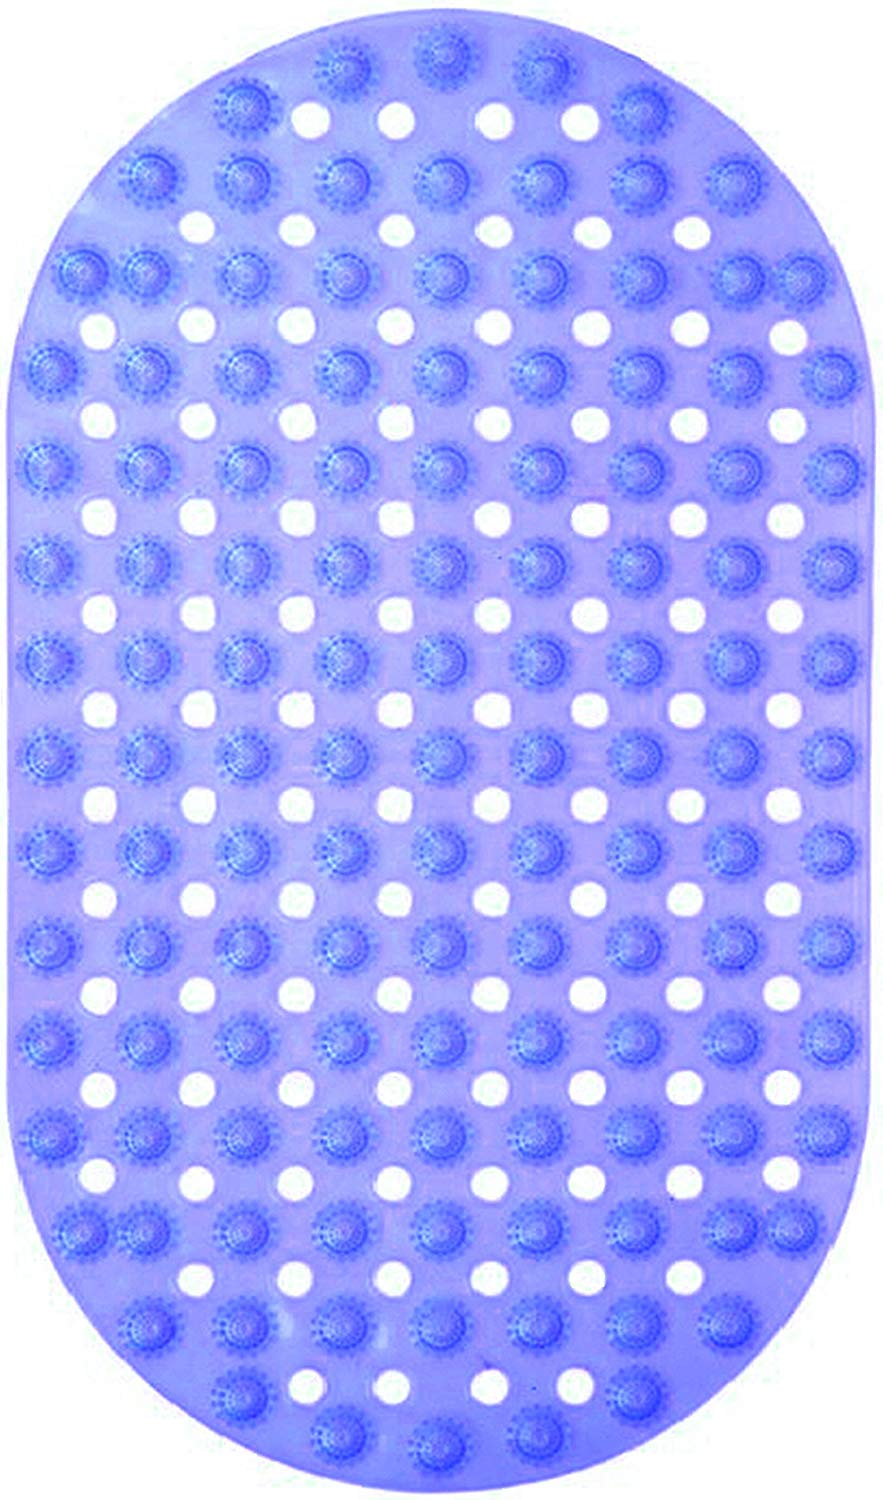 Bathtub Mat - Bathtub Mats Non Slip Mildew Resistant - Bathtub Mats - Nonslip Bathtub Mat - Bathtub Mat Kids - Baby Bathtub Mat - Non Slip Bathtub Mat - Bathtub Mat Non Slip - Bathtub Mat Baby